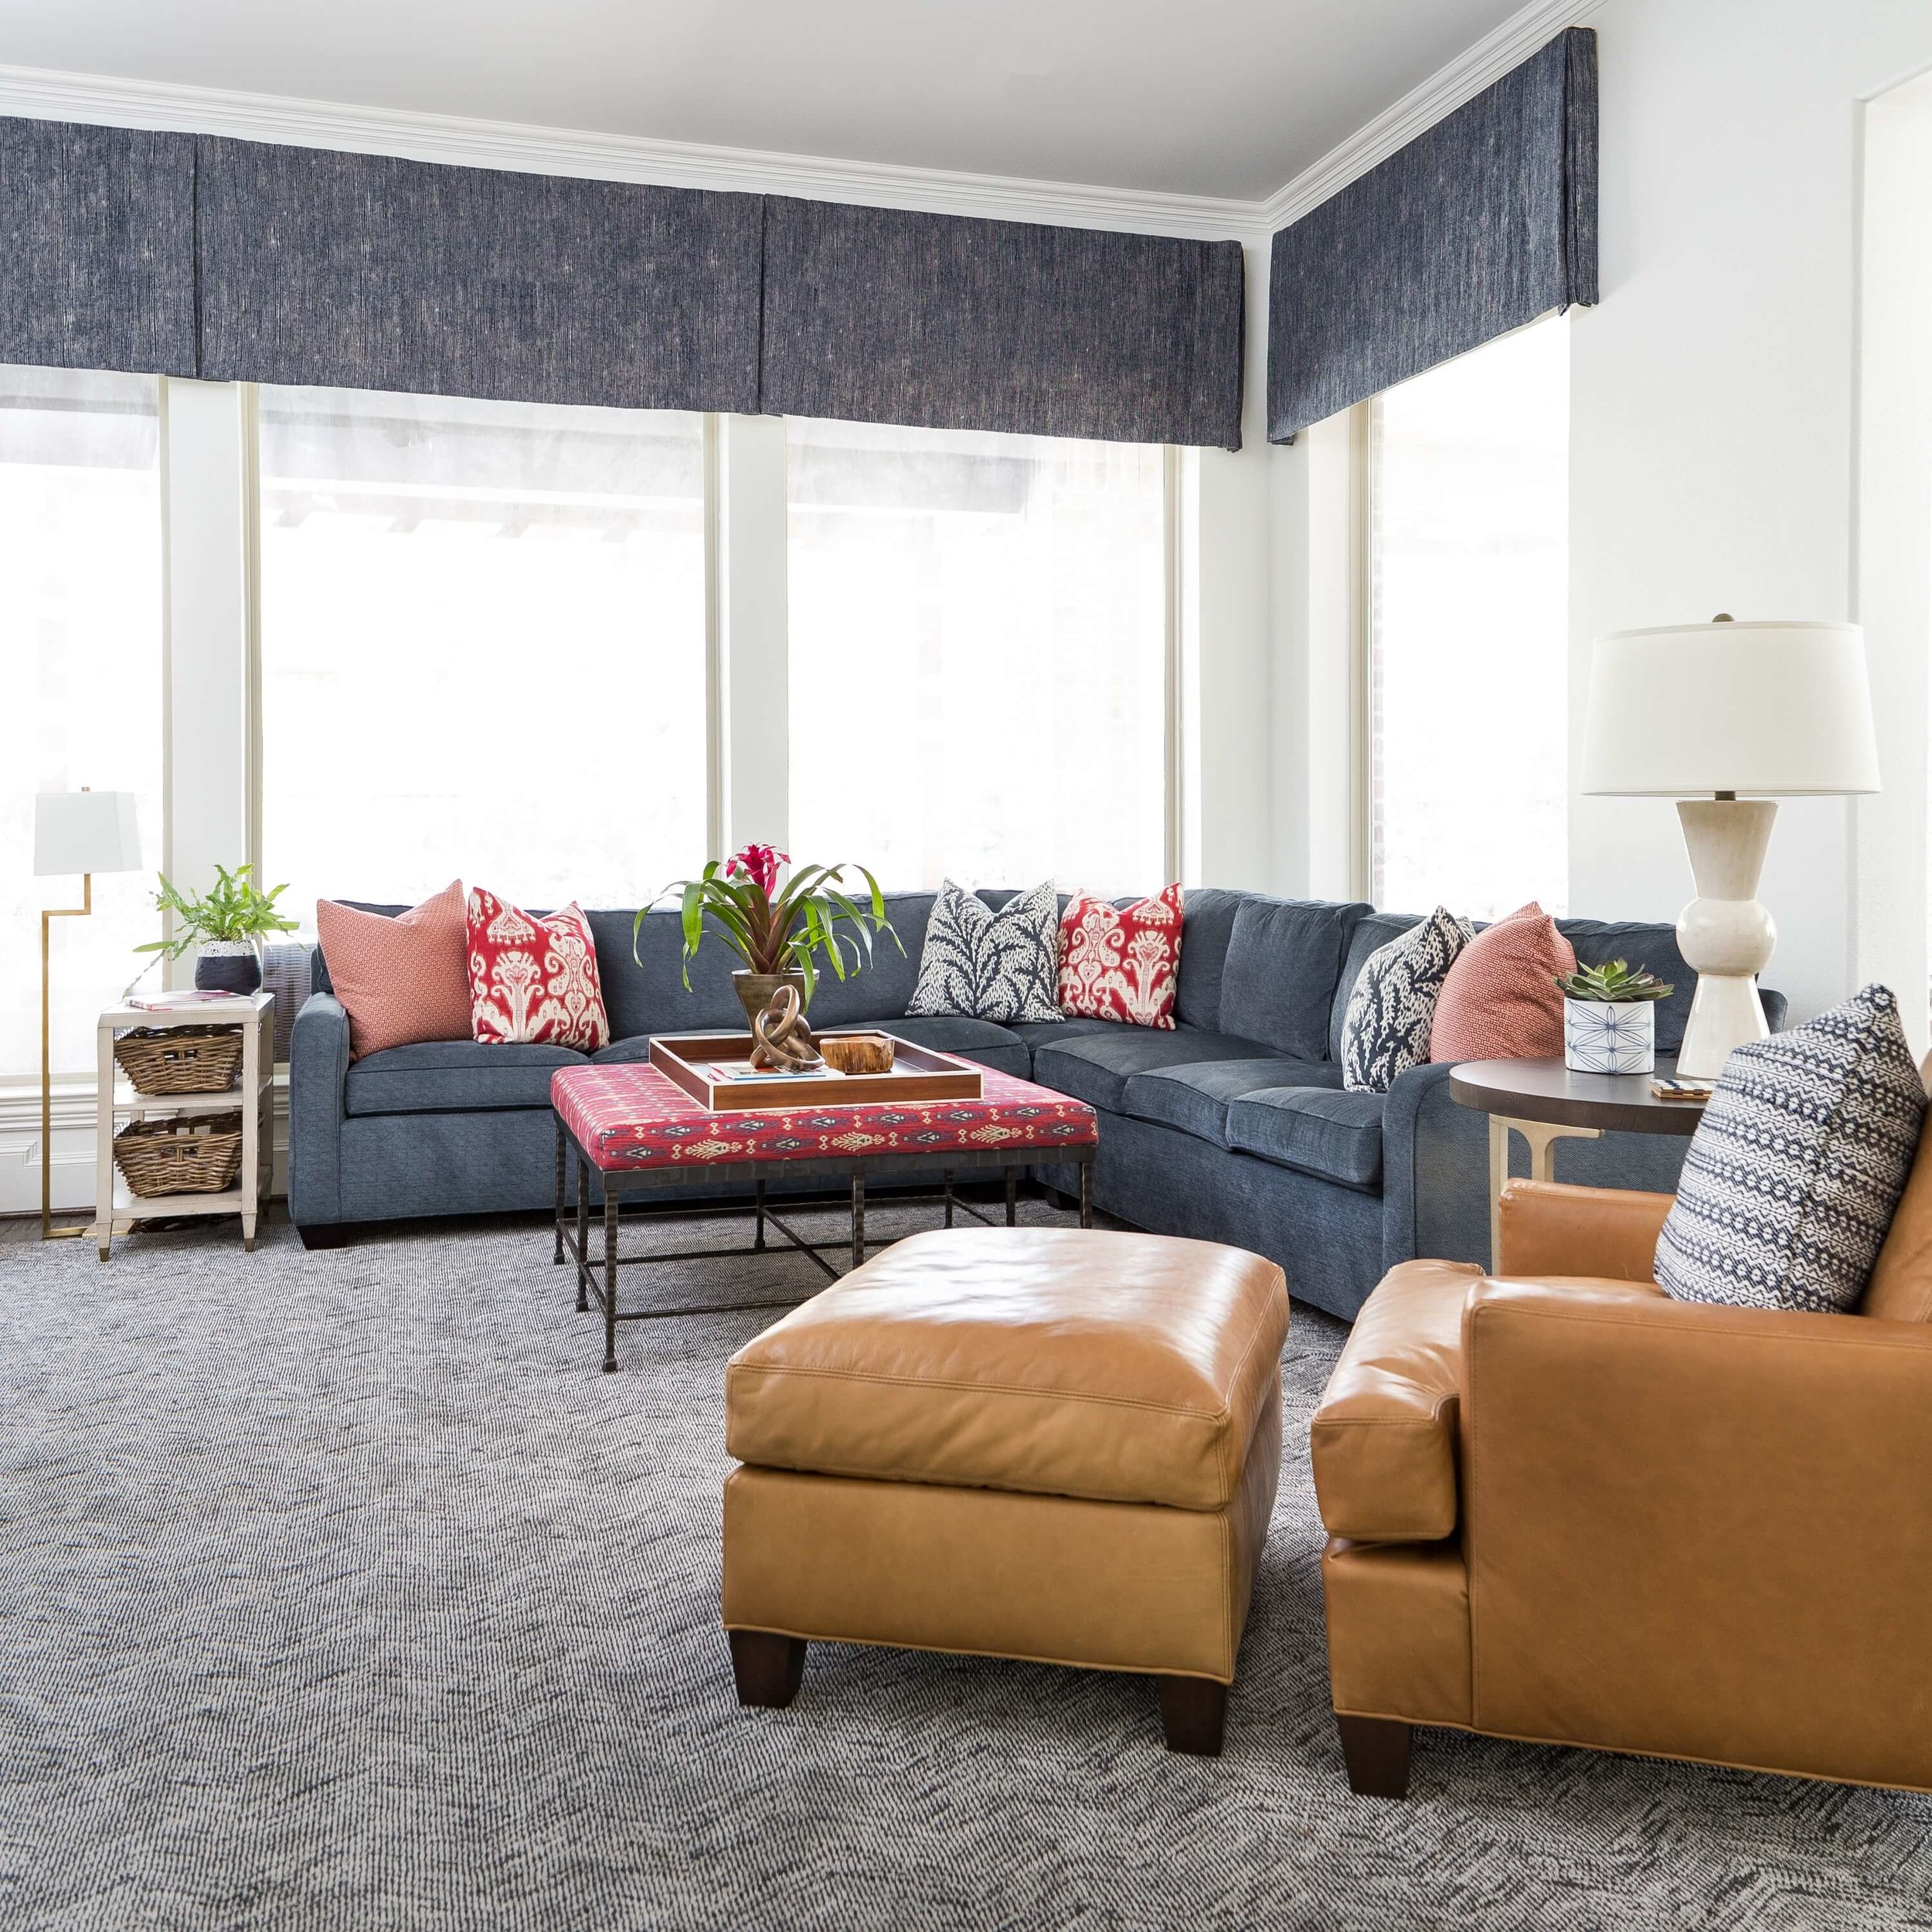 Family room with red patterned decorative pillows on a navy sofa add color and life to the room. | Interior Designer: Carla Aston #pillows #patternedpillows #redpillows #homedecor